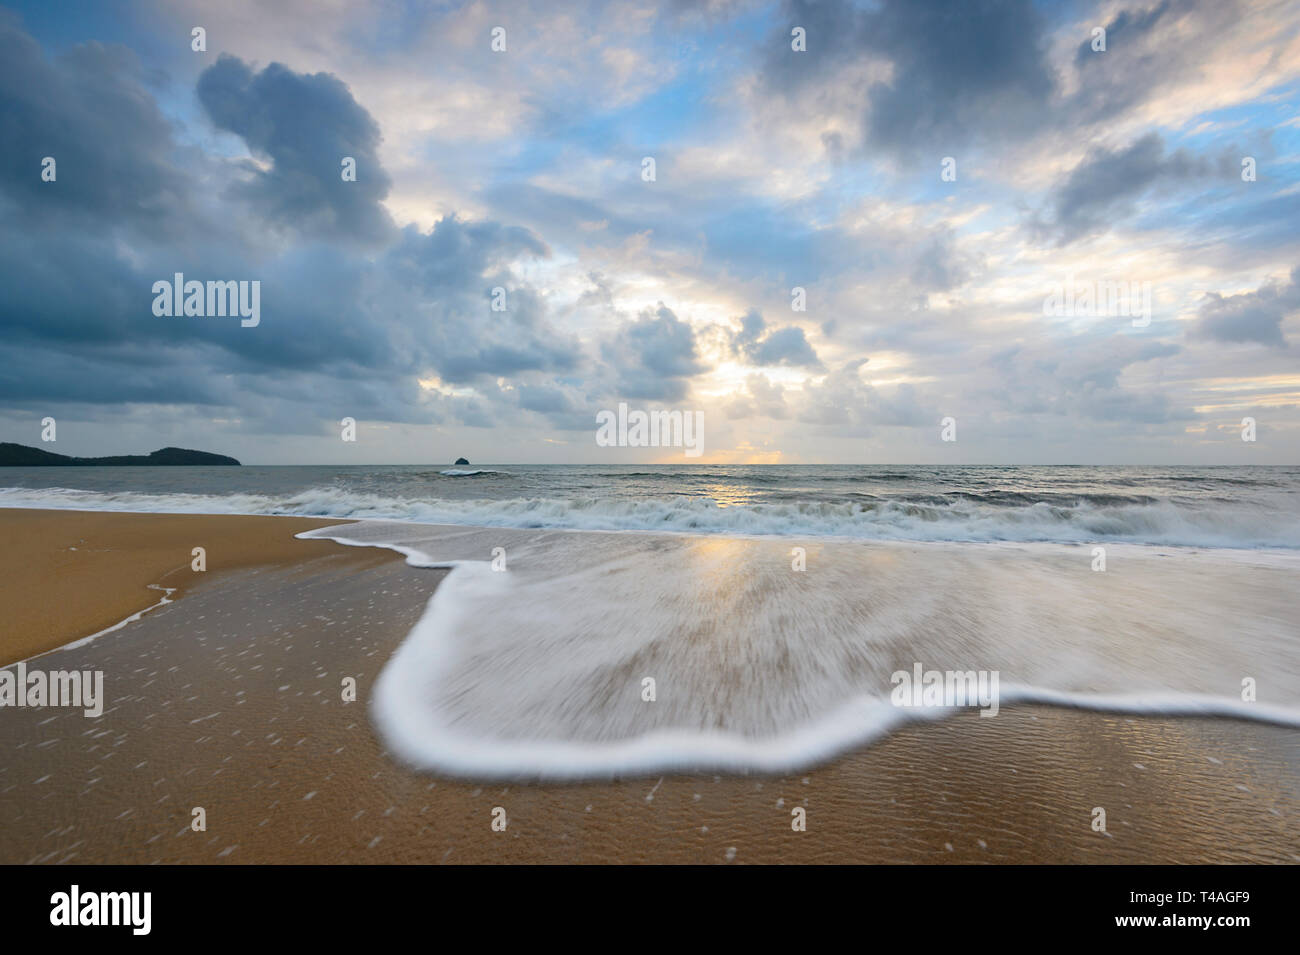 Stormy sky and gentle waves spume at sunrise, Palm Cove, Cairns Northern Beaches, Far North Queensland, FNQ, QLD, Australia - Stock Image